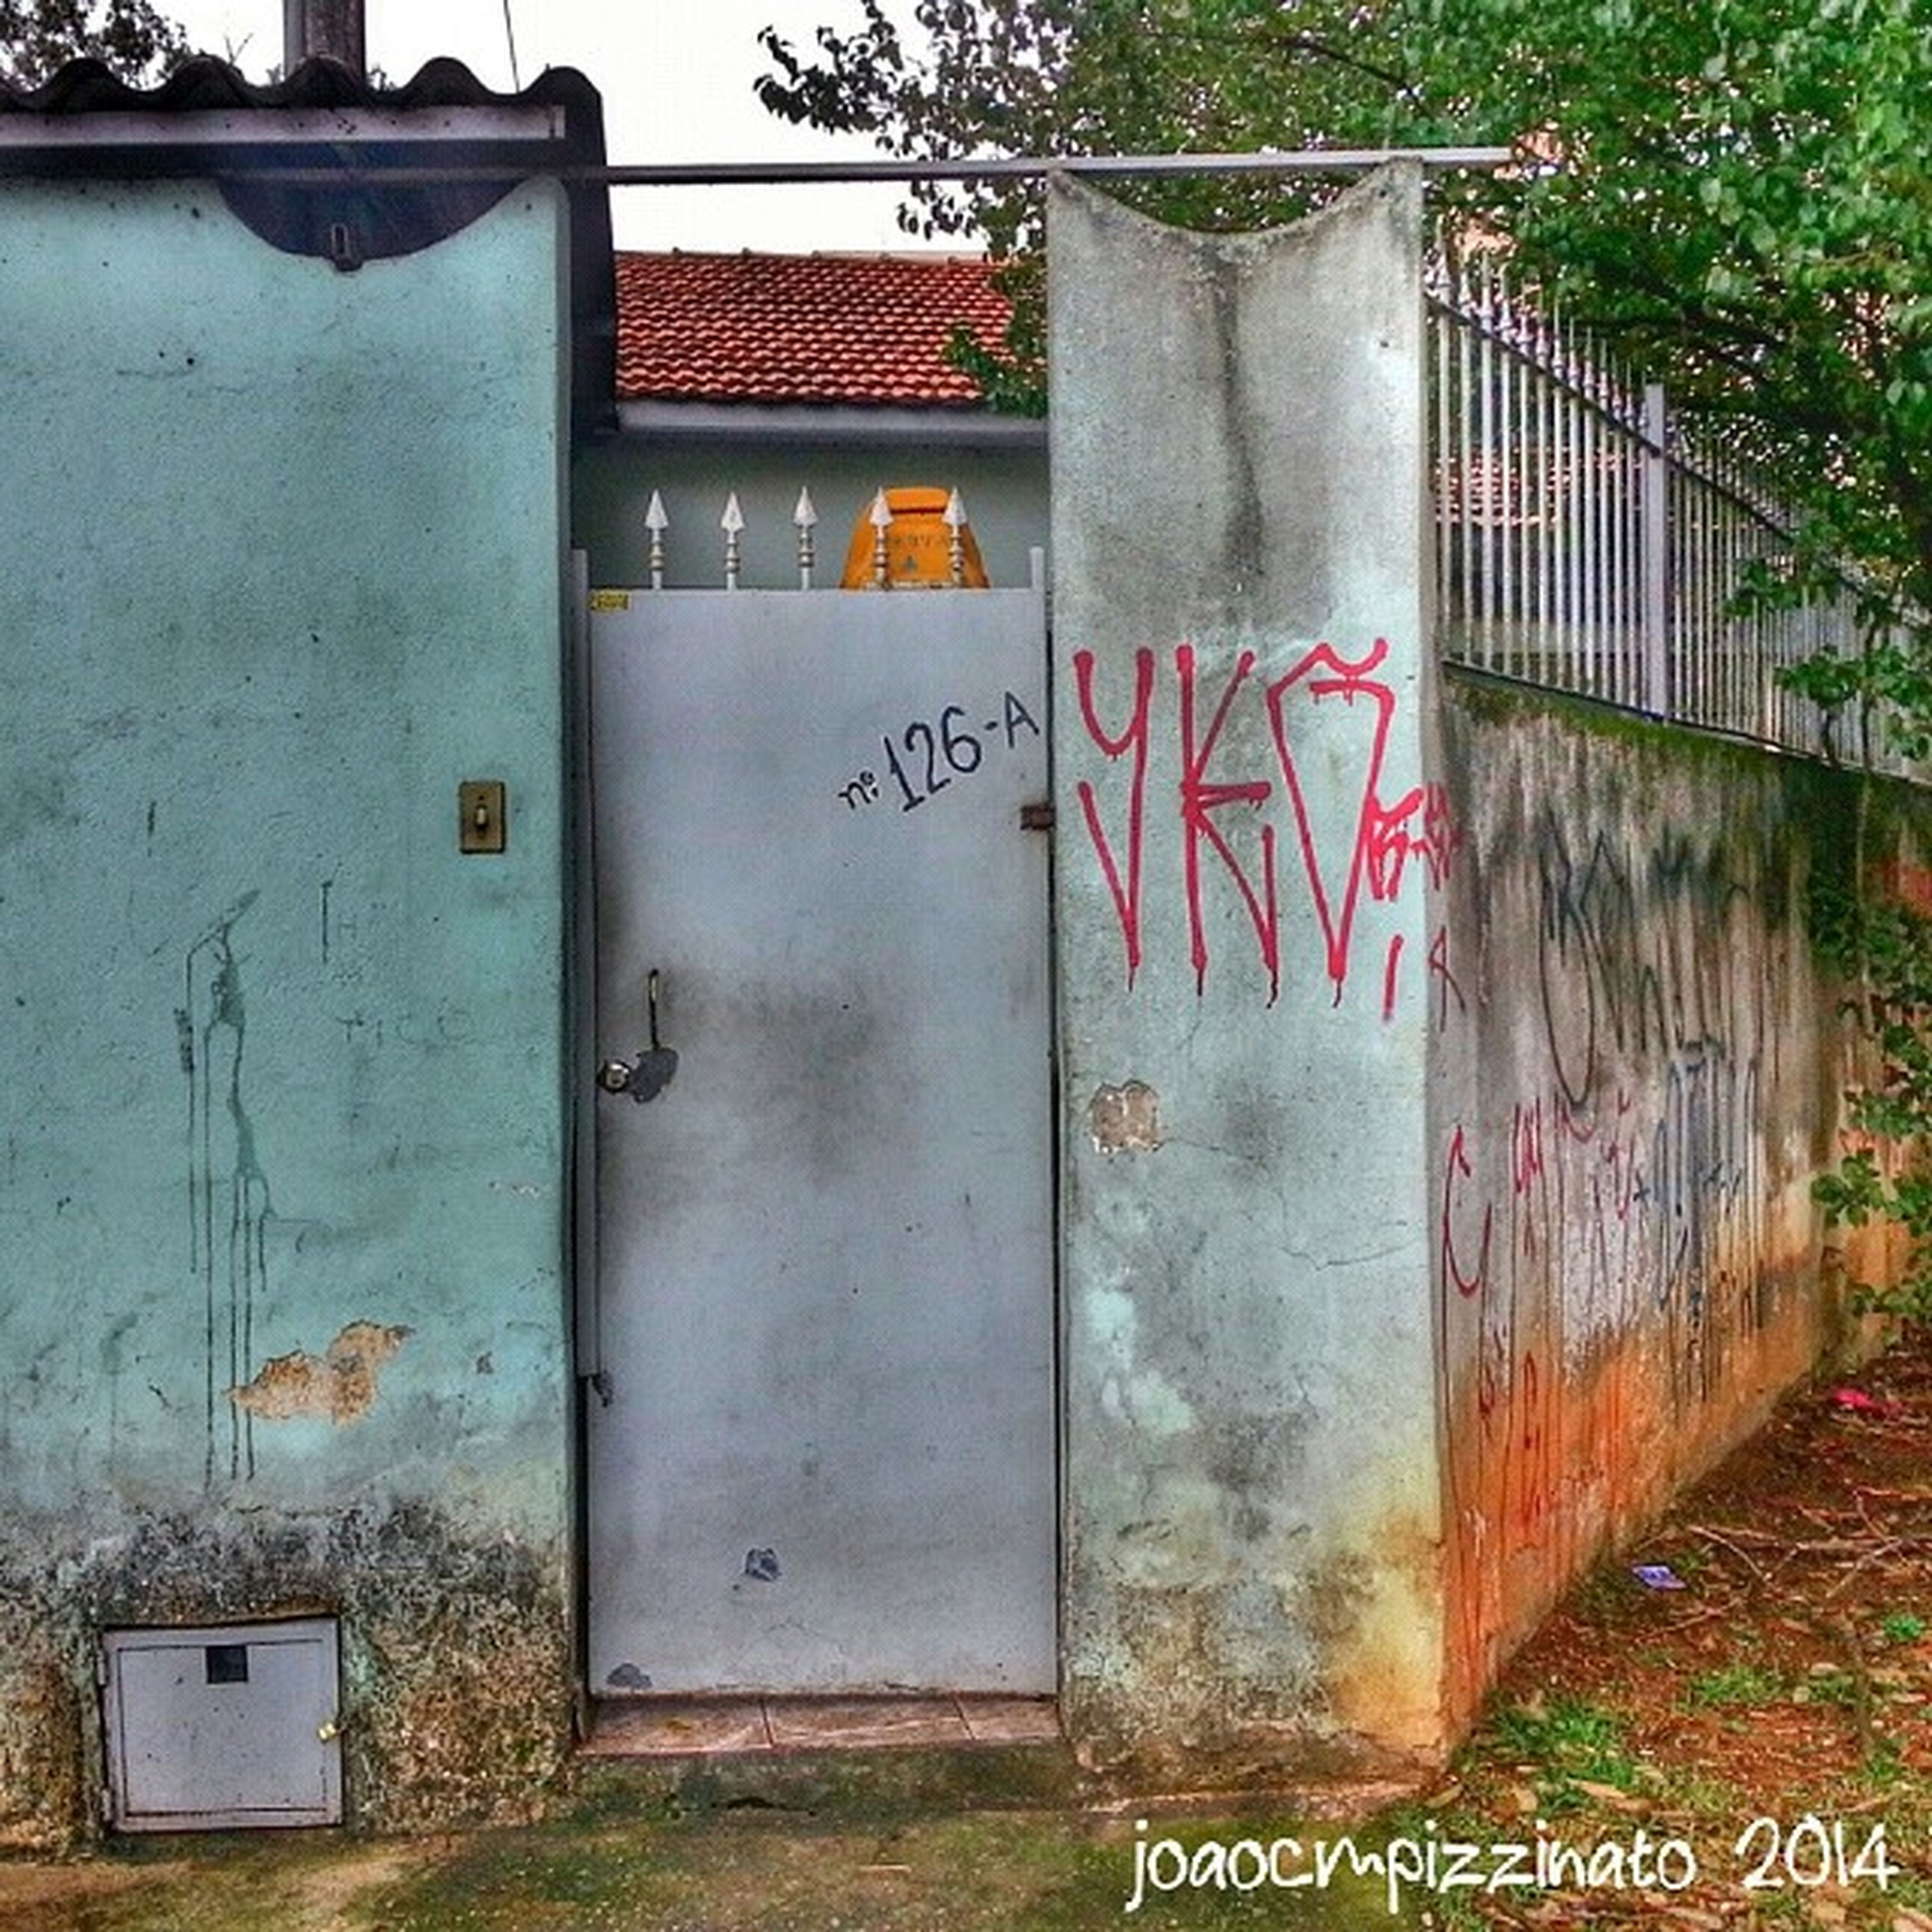 architecture, built structure, building exterior, graffiti, text, weathered, door, wall - building feature, old, house, abandoned, western script, closed, communication, run-down, residential structure, building, damaged, obsolete, window